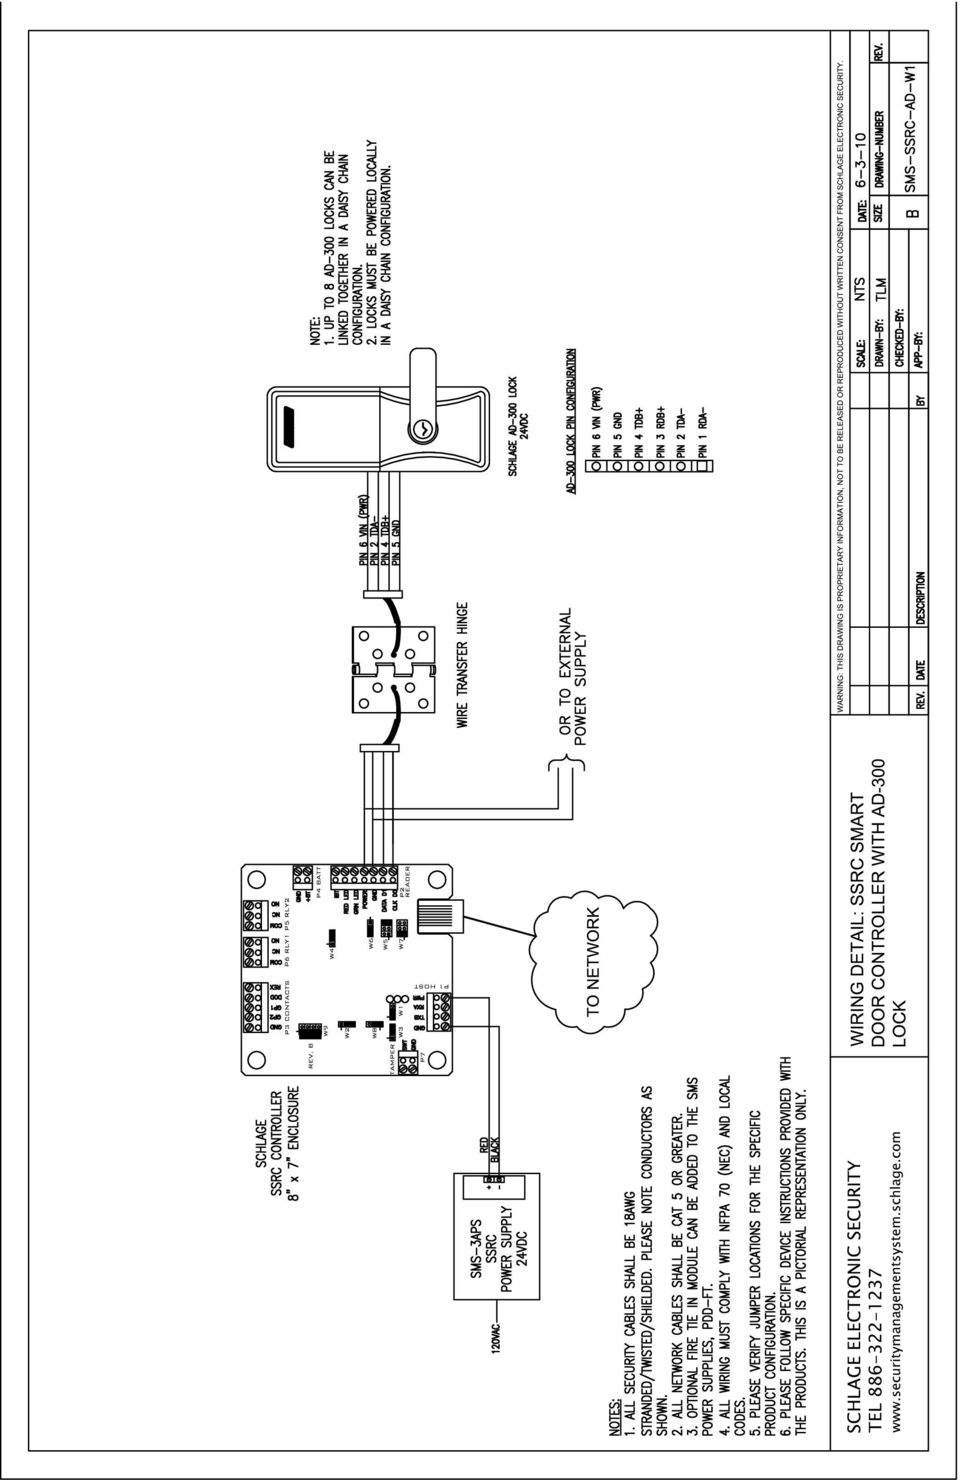 Schlage Series 300 Wiring Diagram - Freebootstrapthemes.co • - Nest Wiring Diagram Pdf